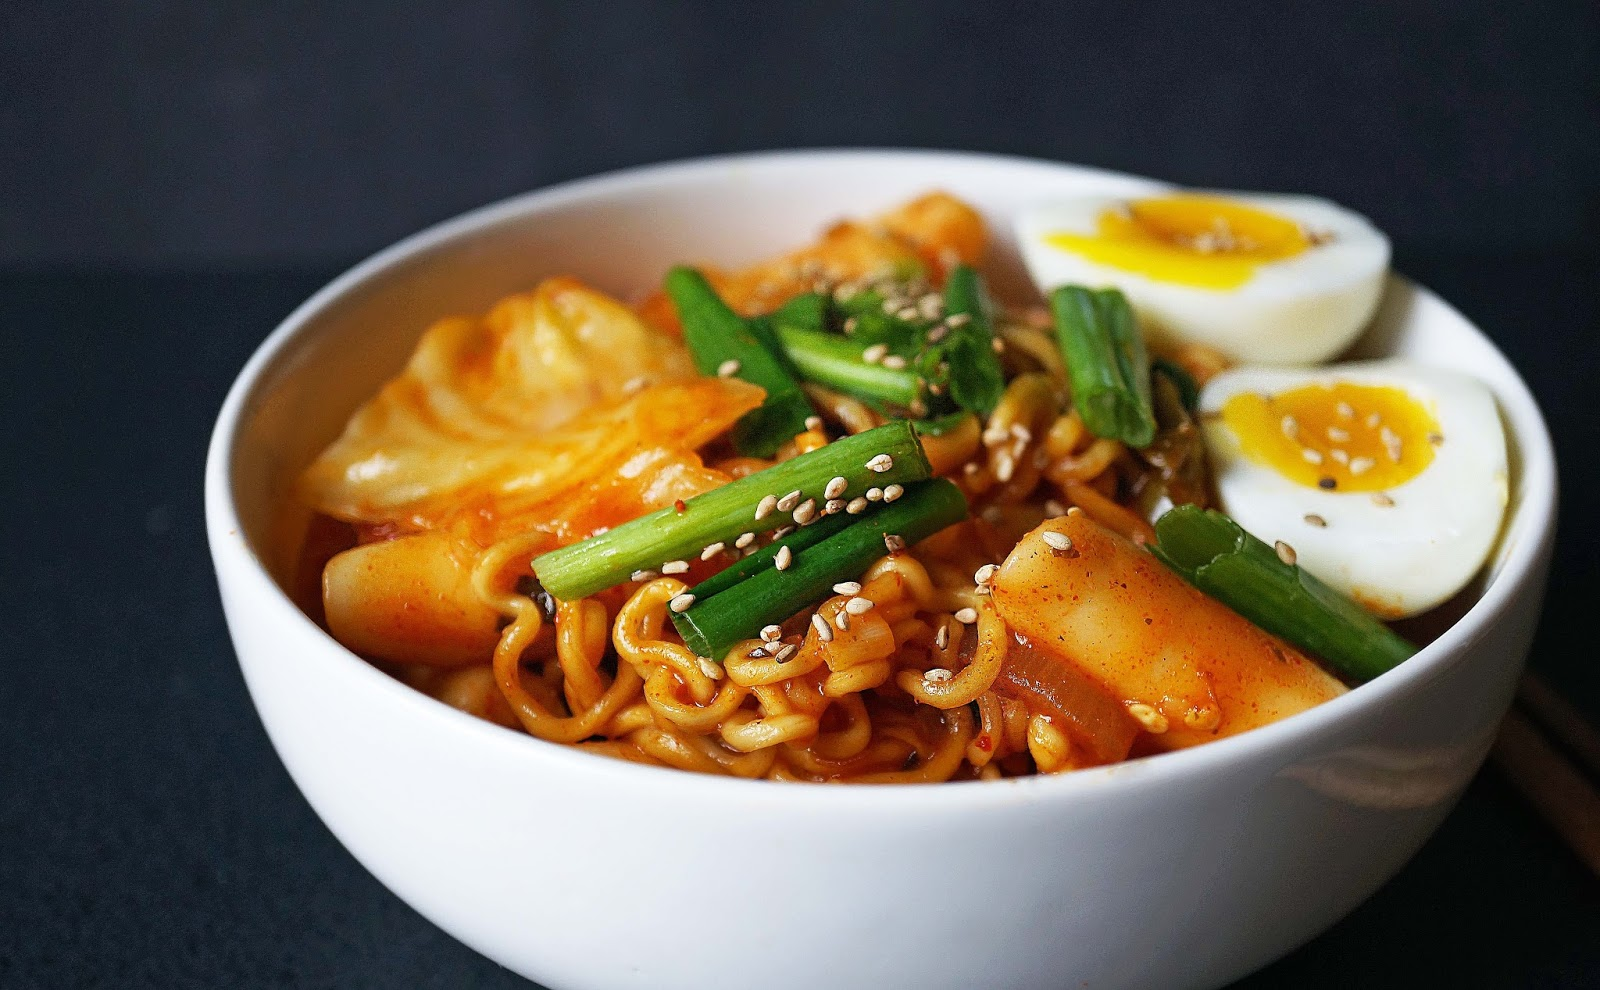 Korean Spicy Rice Cake With Ramen